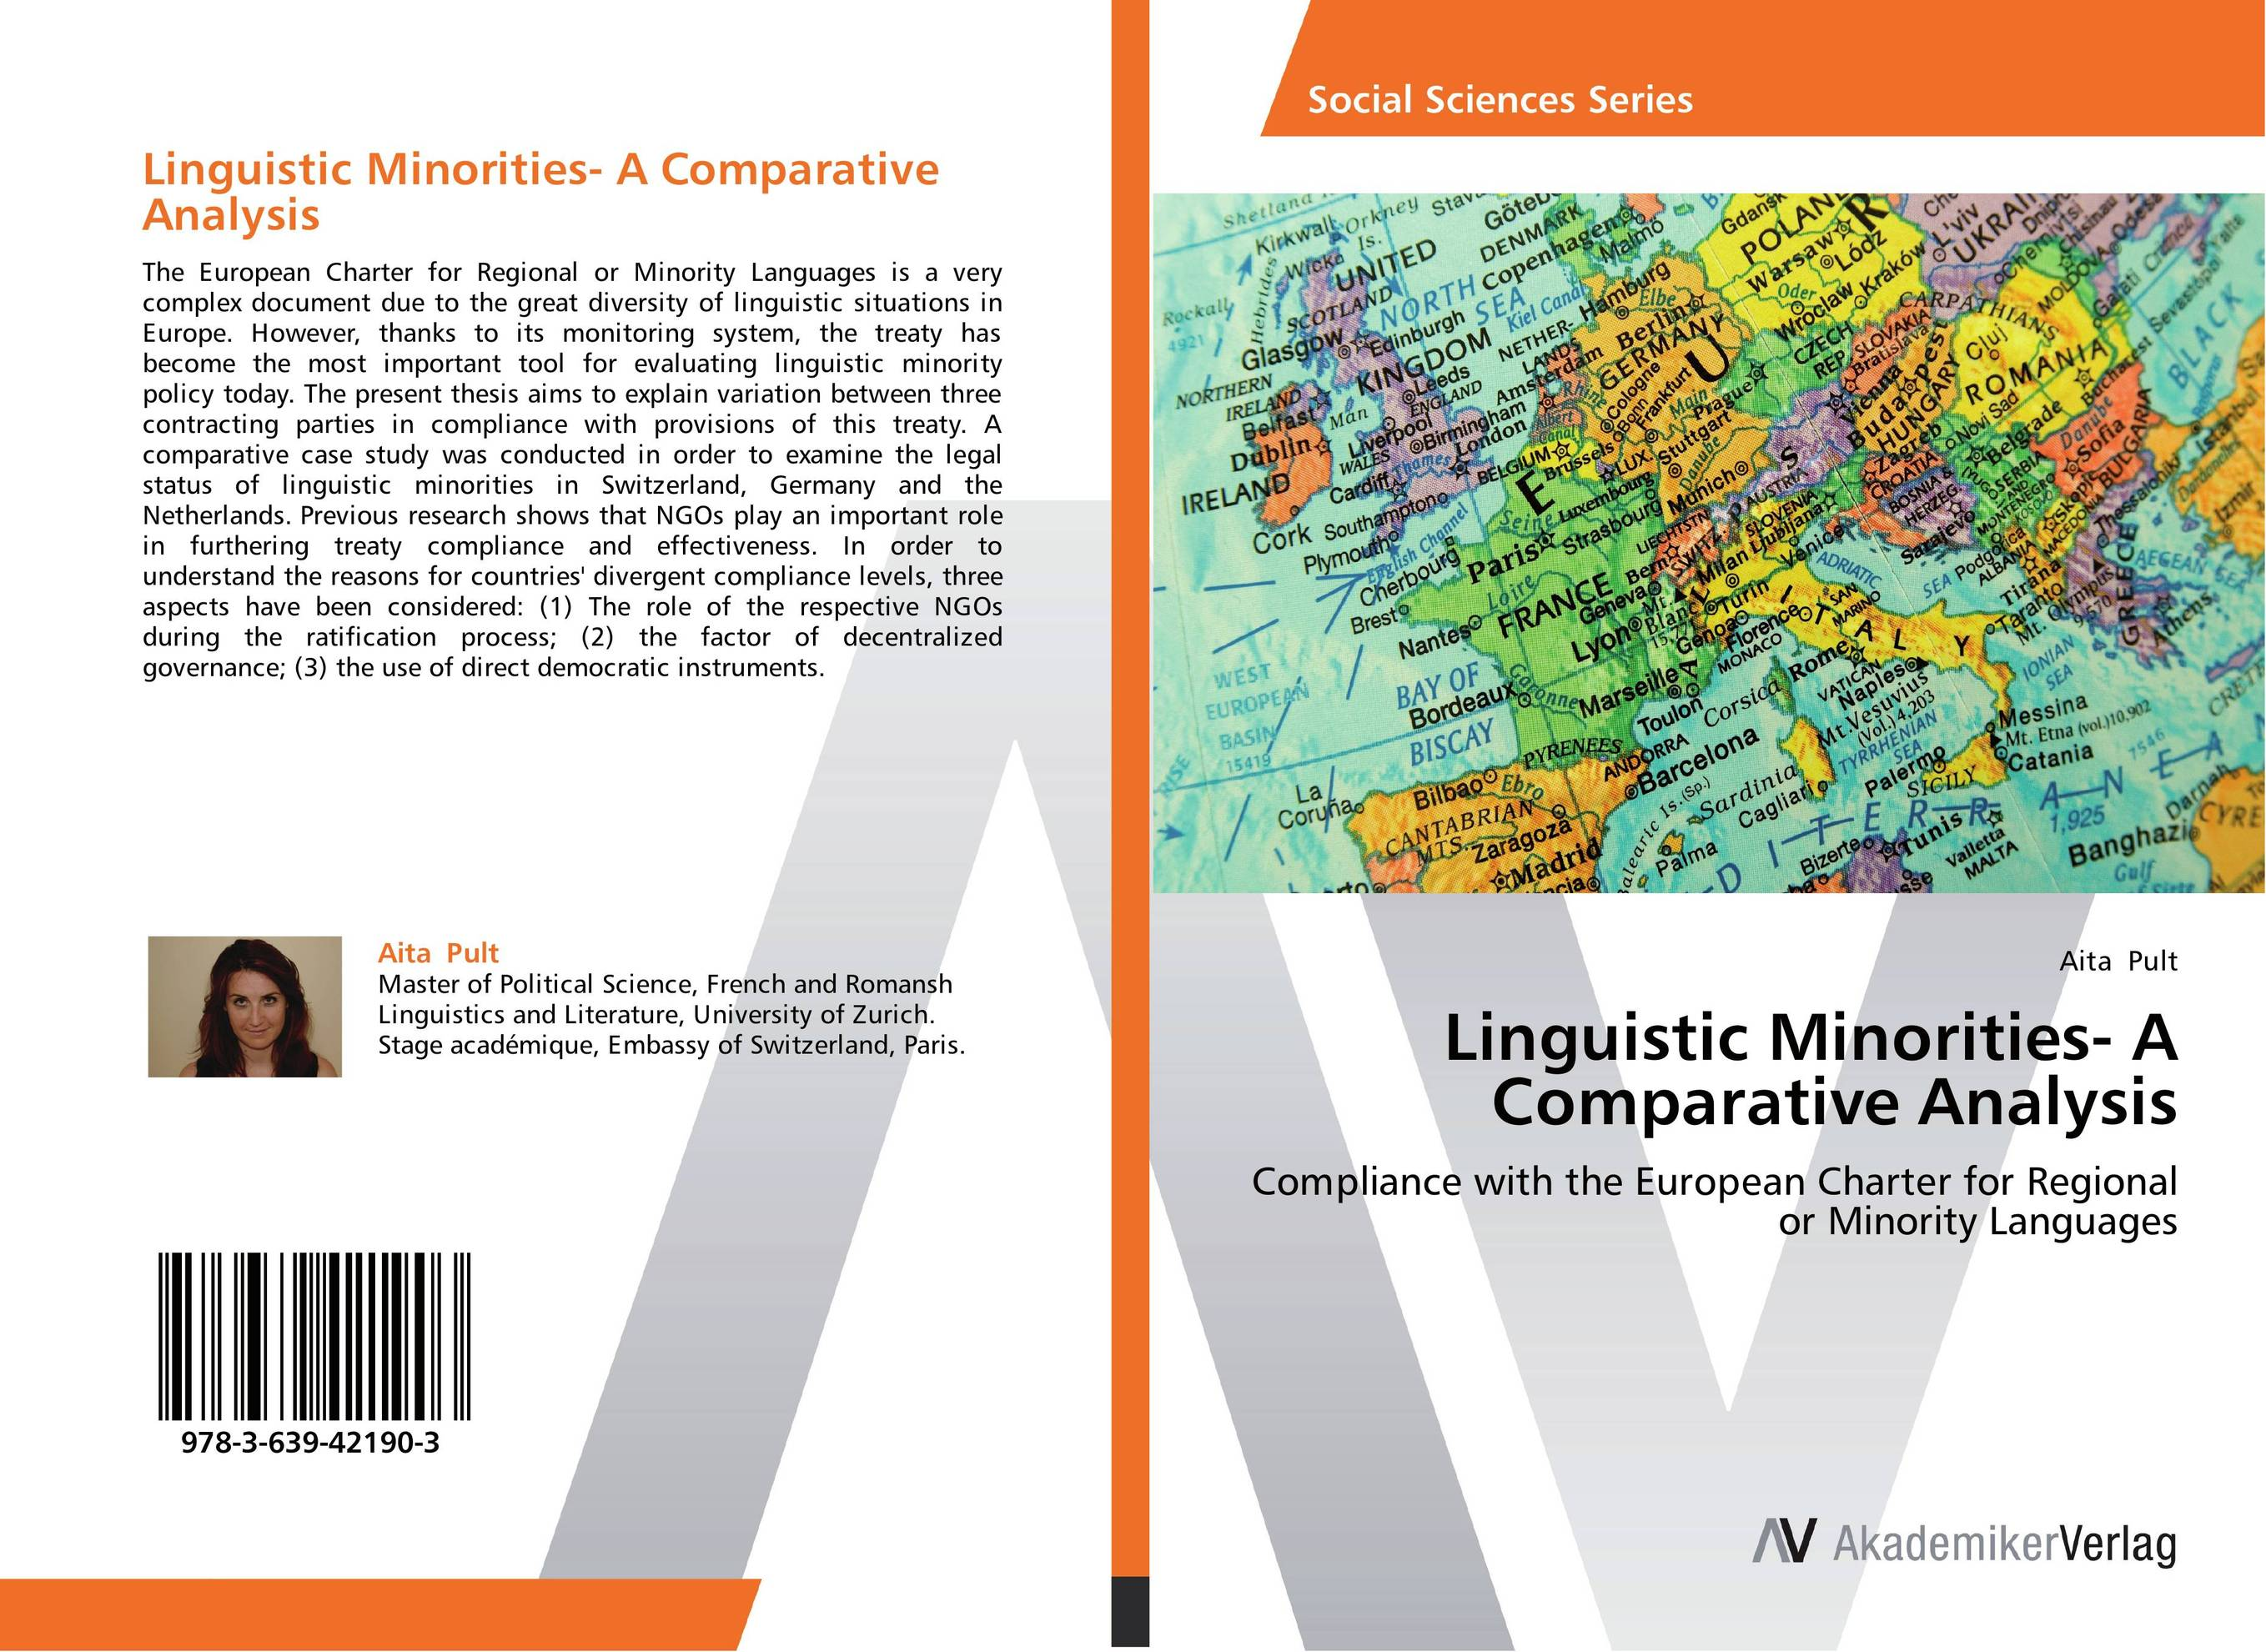 Linguistic Minorities- A Comparative Analysis shamima akhter m harun ar rashid and hammad uddin comparative efficiency analysis of broiler farming in bangladesh